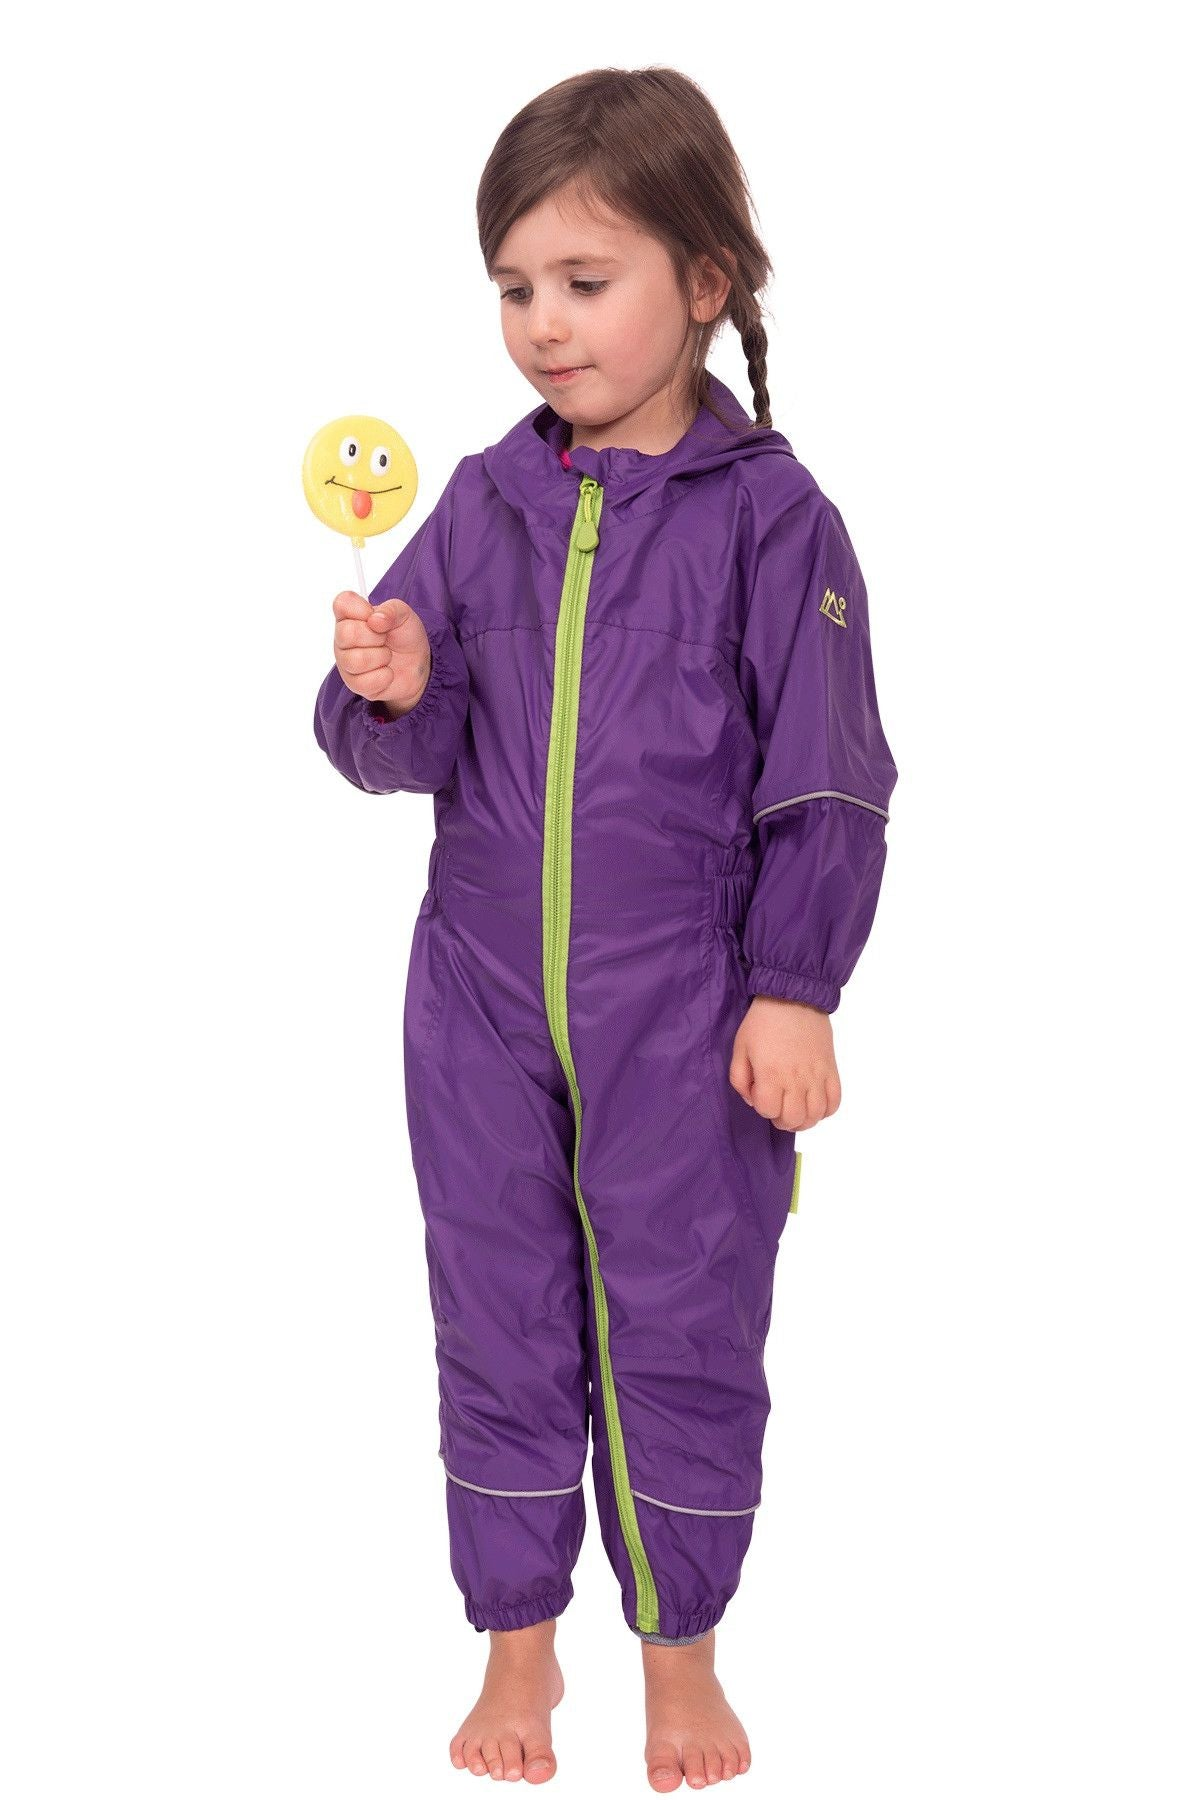 Find great deals on eBay for toddlers waterproof suits. Shop with confidence.